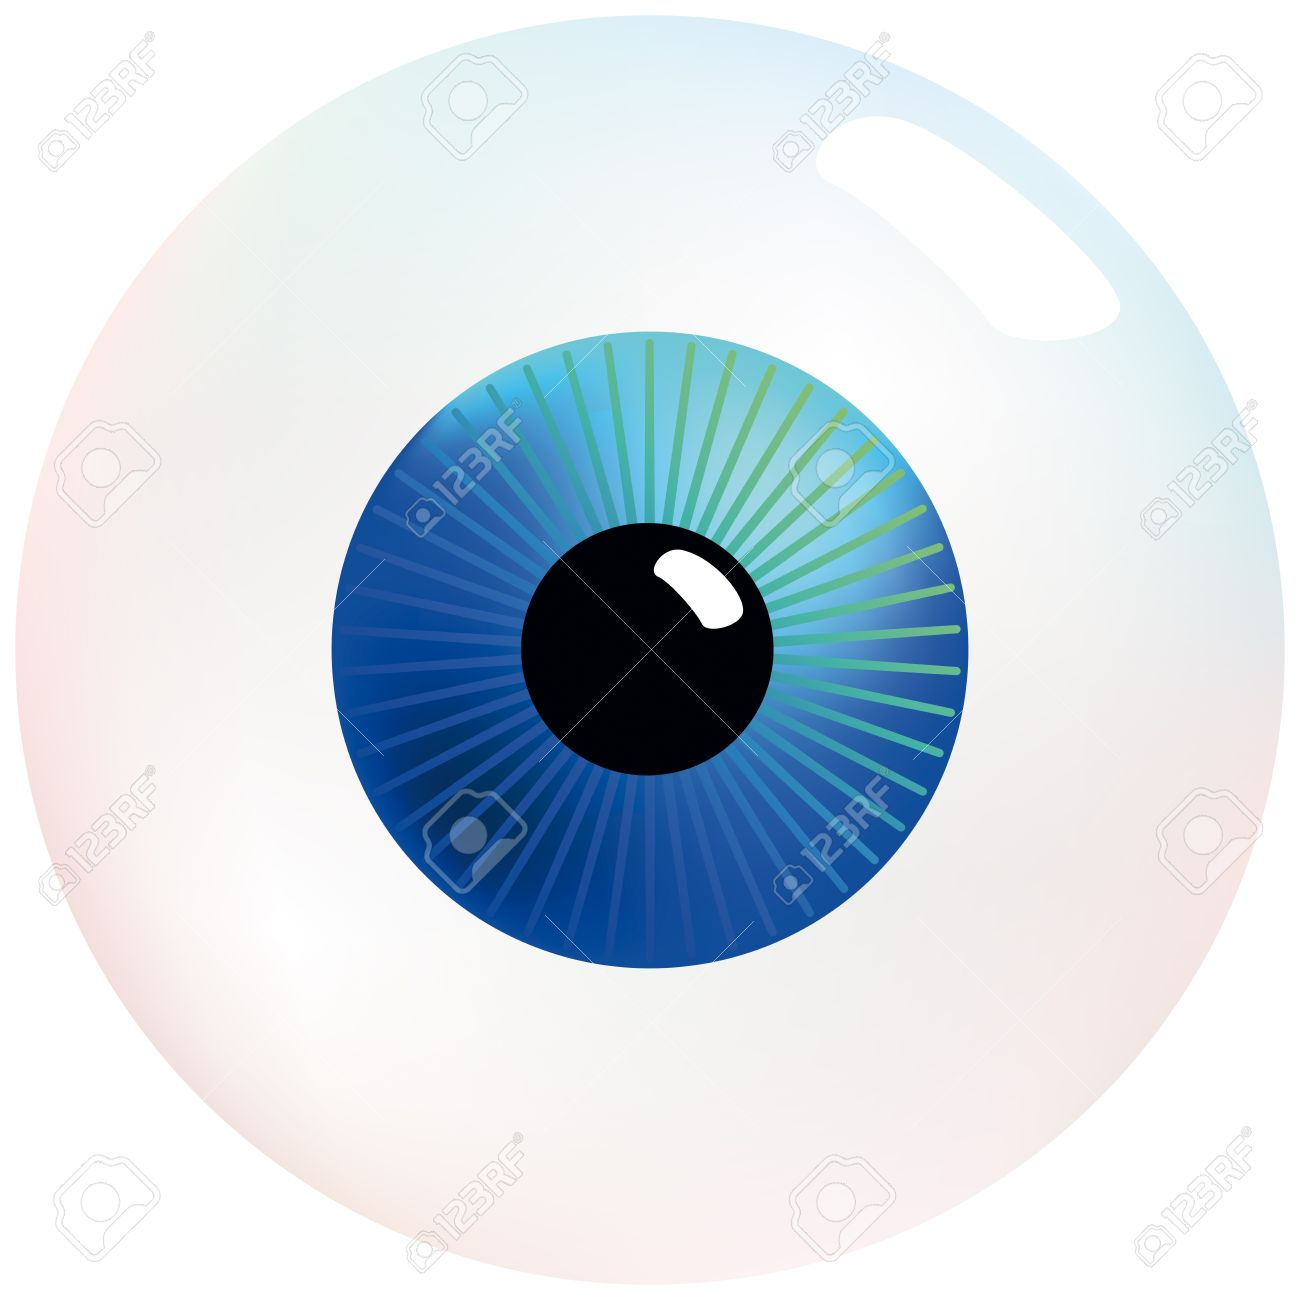 eyeball with blue and turquoise colored iris that stares at rh 123rf com free vector eyeball flying eyeball vector